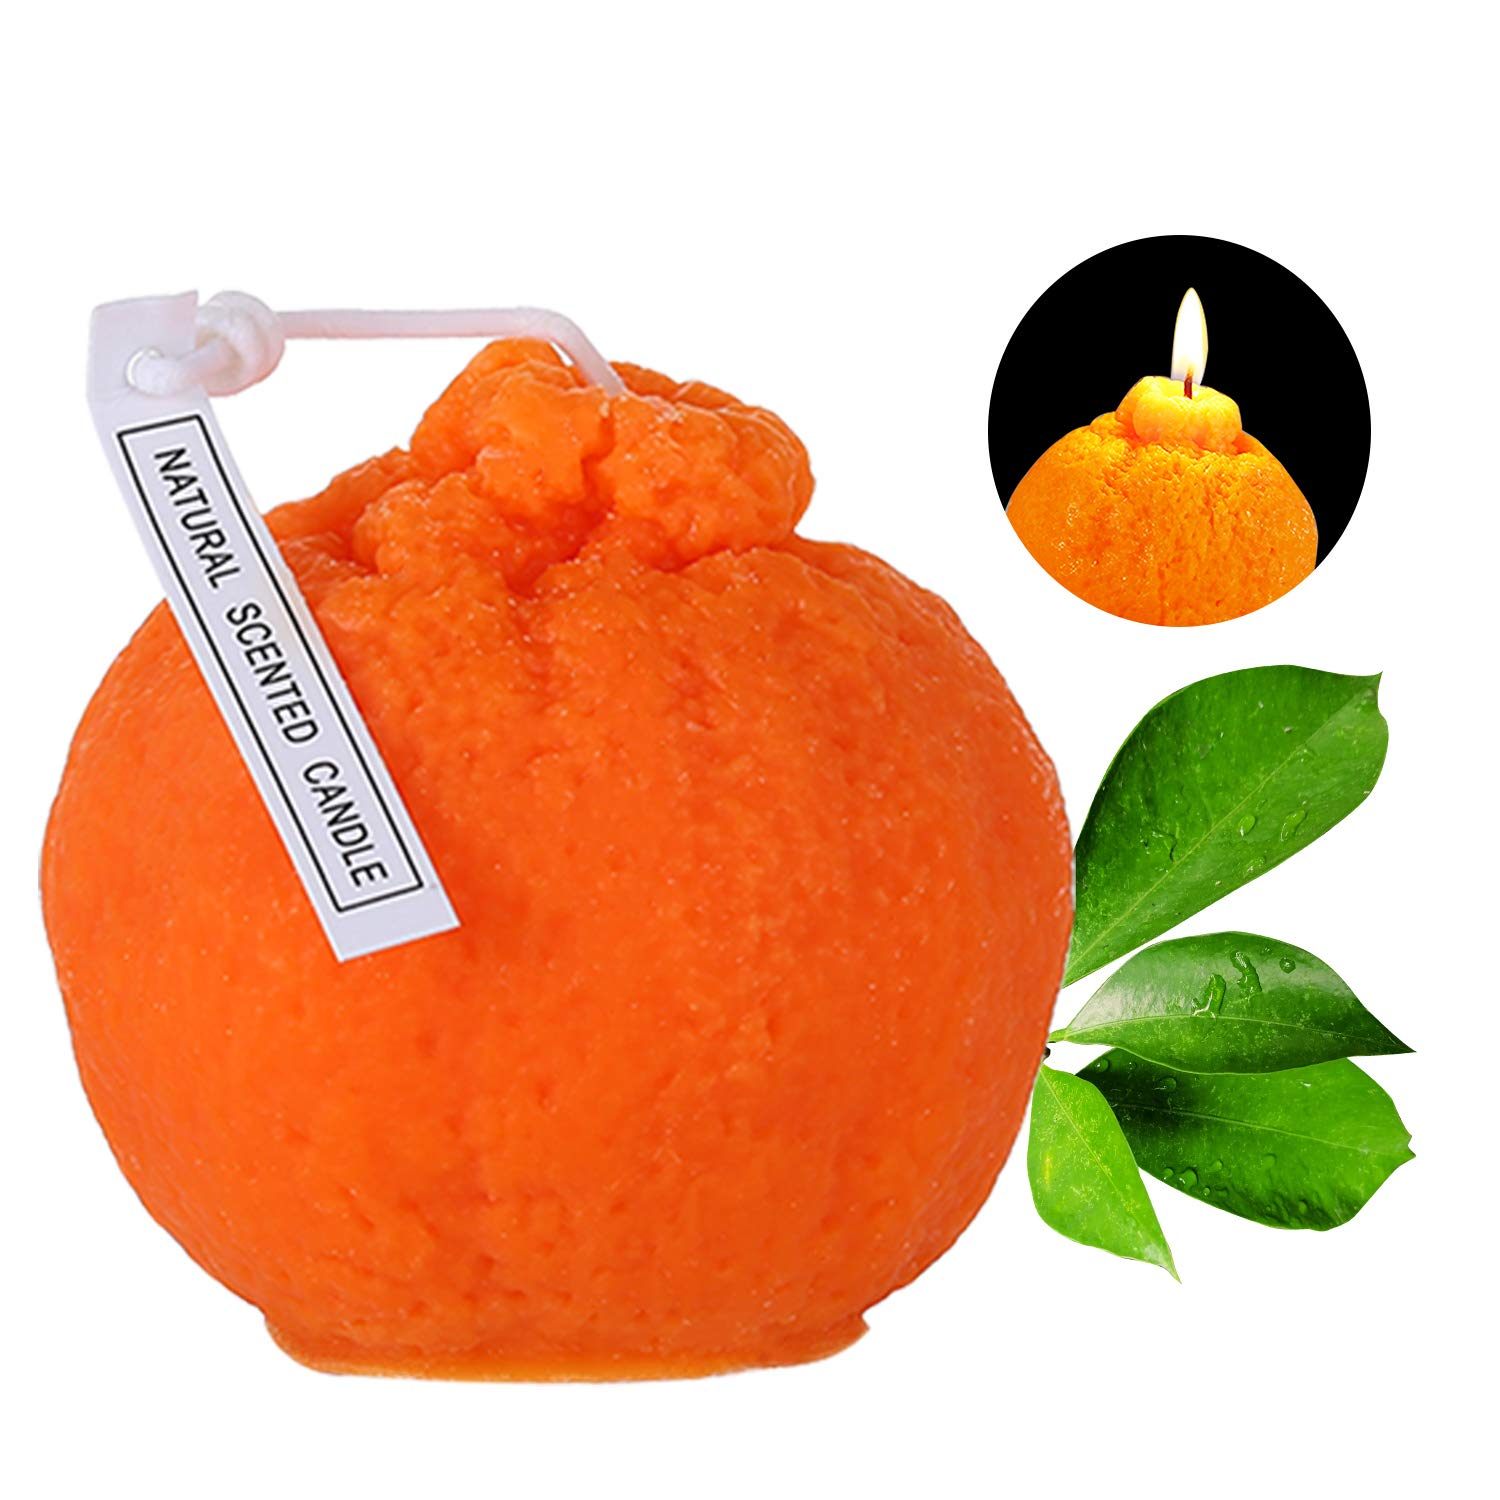 Orange Scented Candles for Home Scented 100% Natural Soy Candle for Birthday Gift Party Wedding Holiday Celebration Decoration